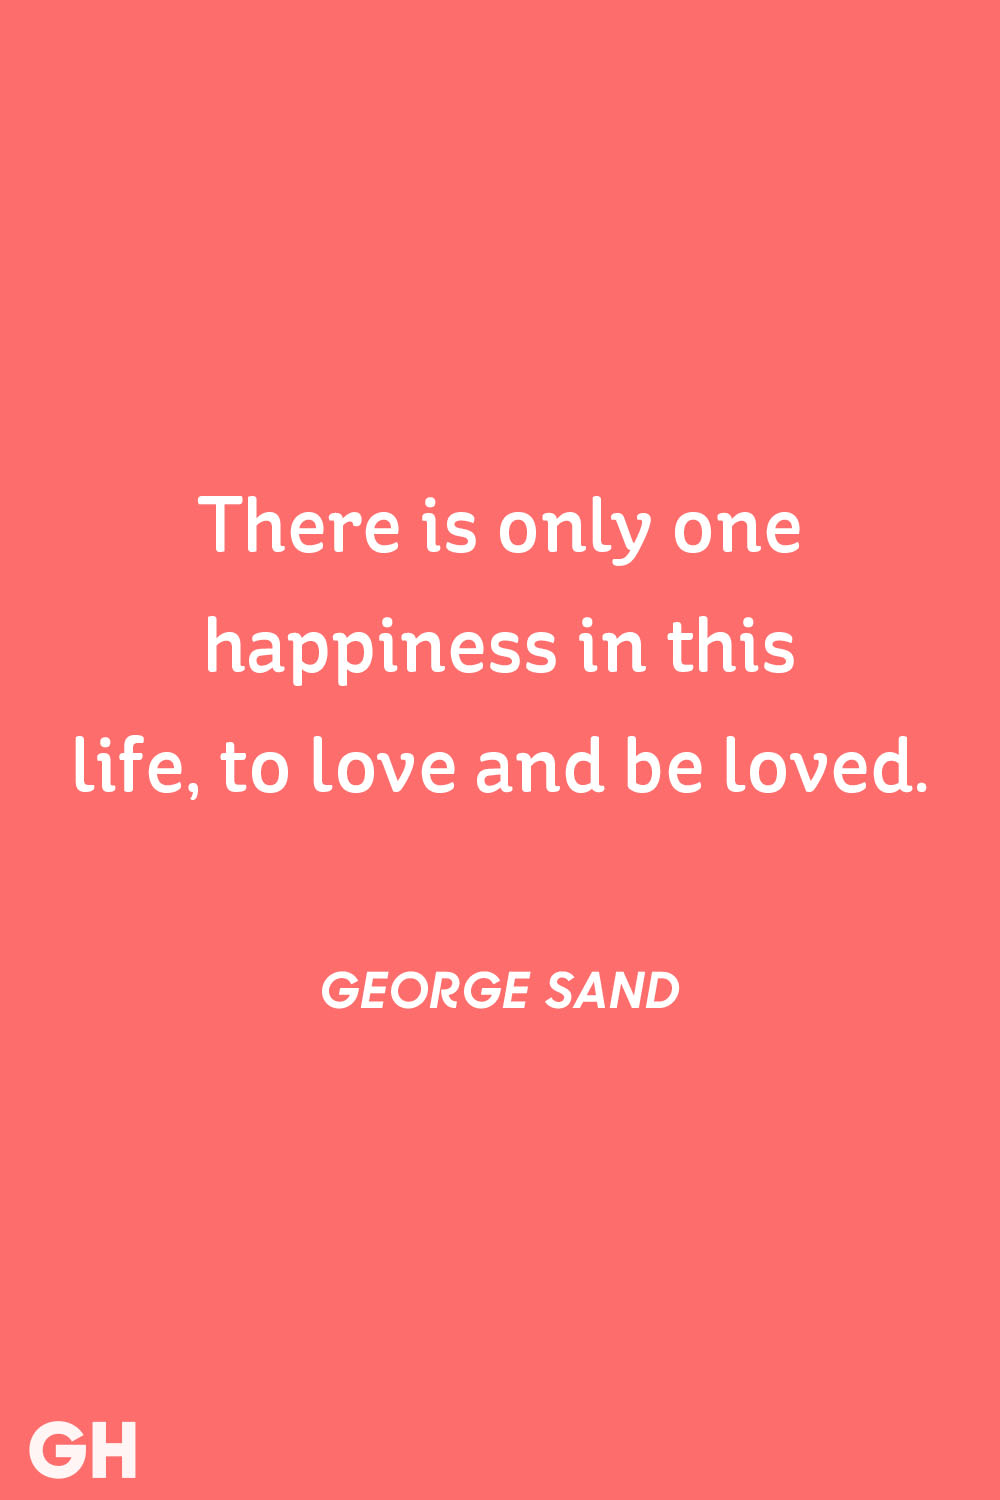 Seasons Of Life Quotes 30 Cute Valentine's Day Quotes  Best Romantic Quotes About